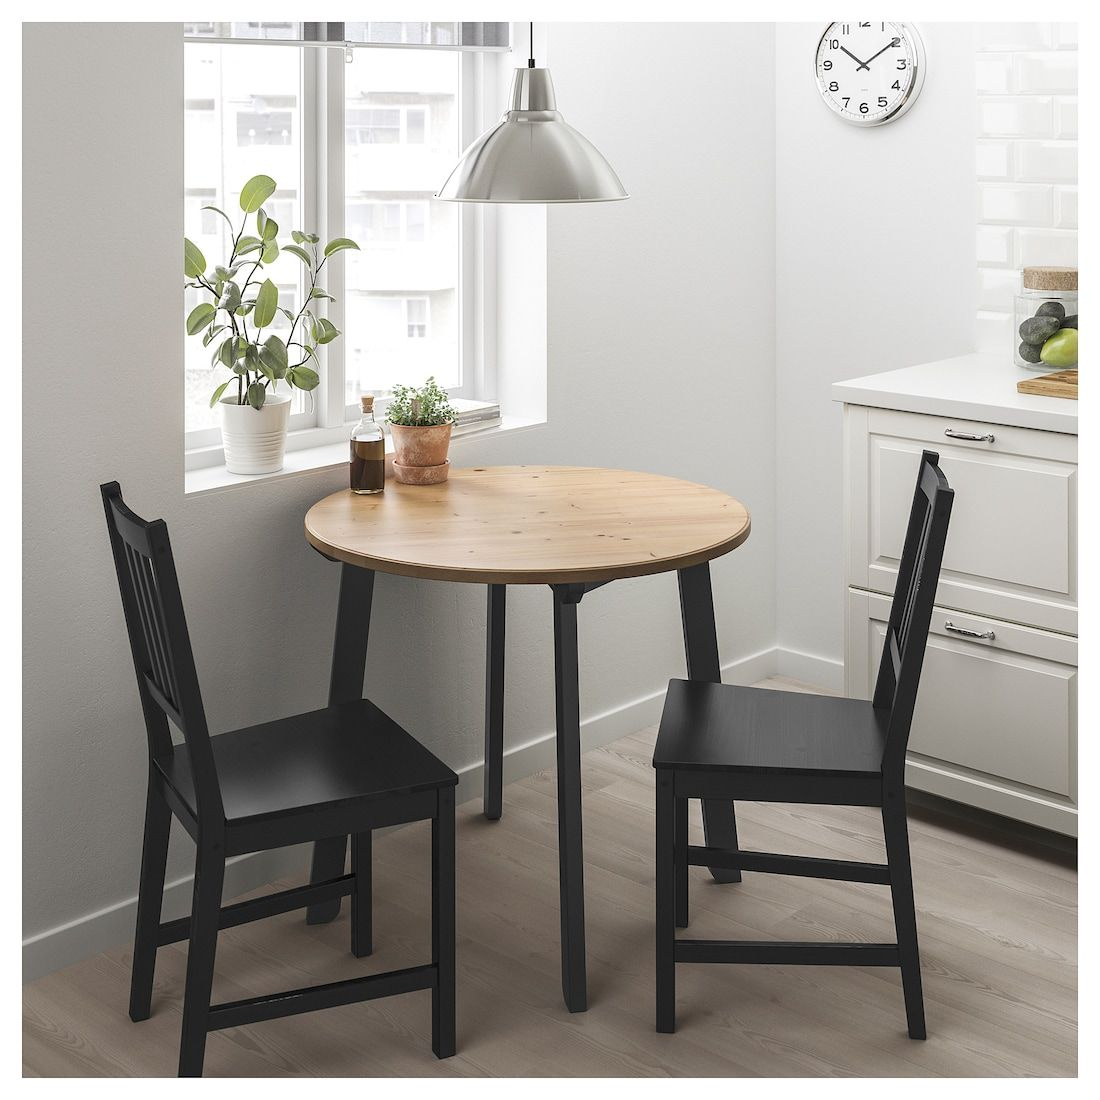 27++ Small dining table for 2 ikea Best Seller